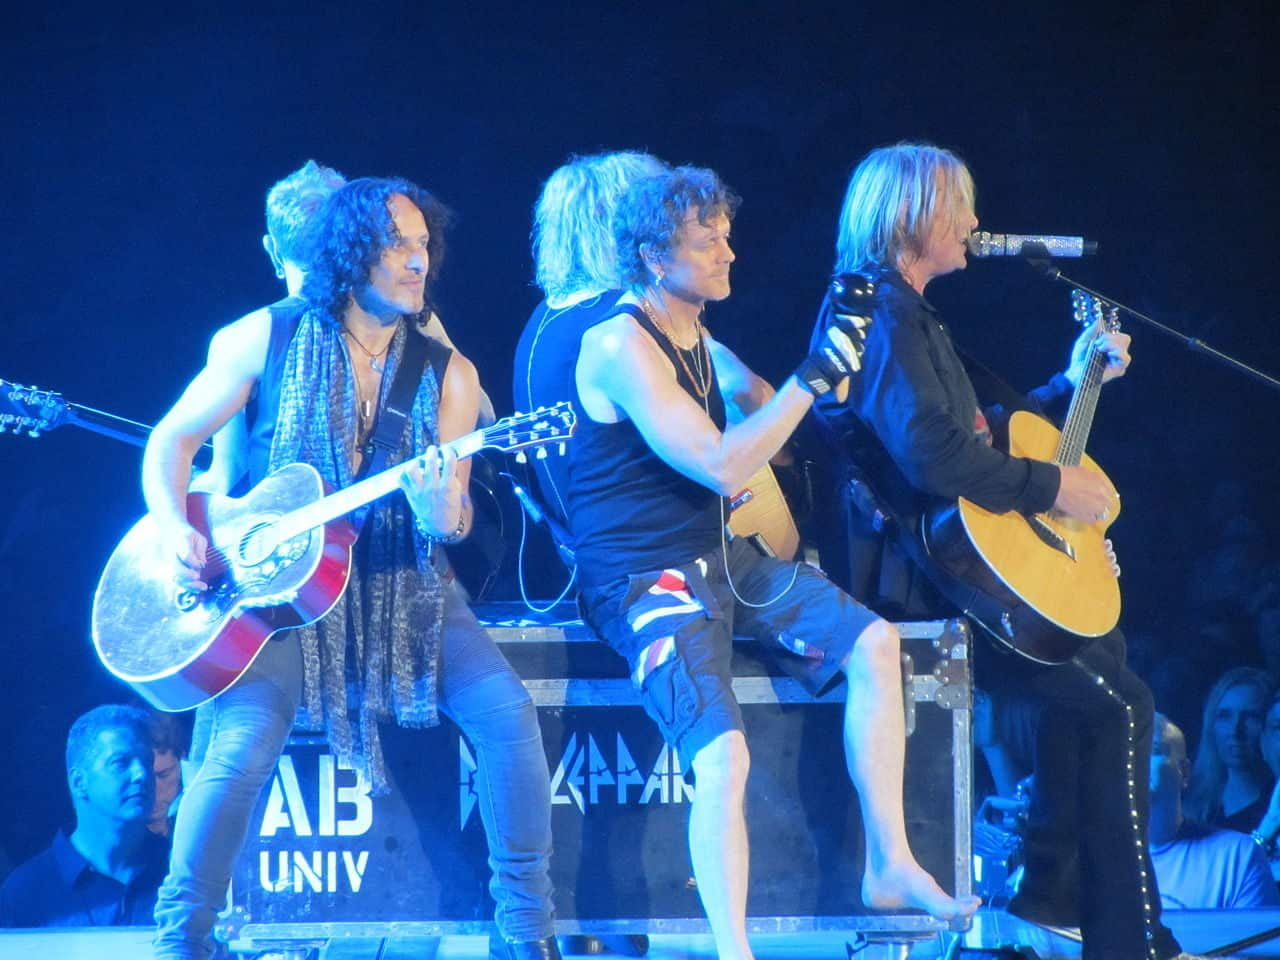 Def Leppard playing an acoustic set at the Allstate Arena in Rosemont, IL.  Photo Credit: Wikimedia | AngryApathy